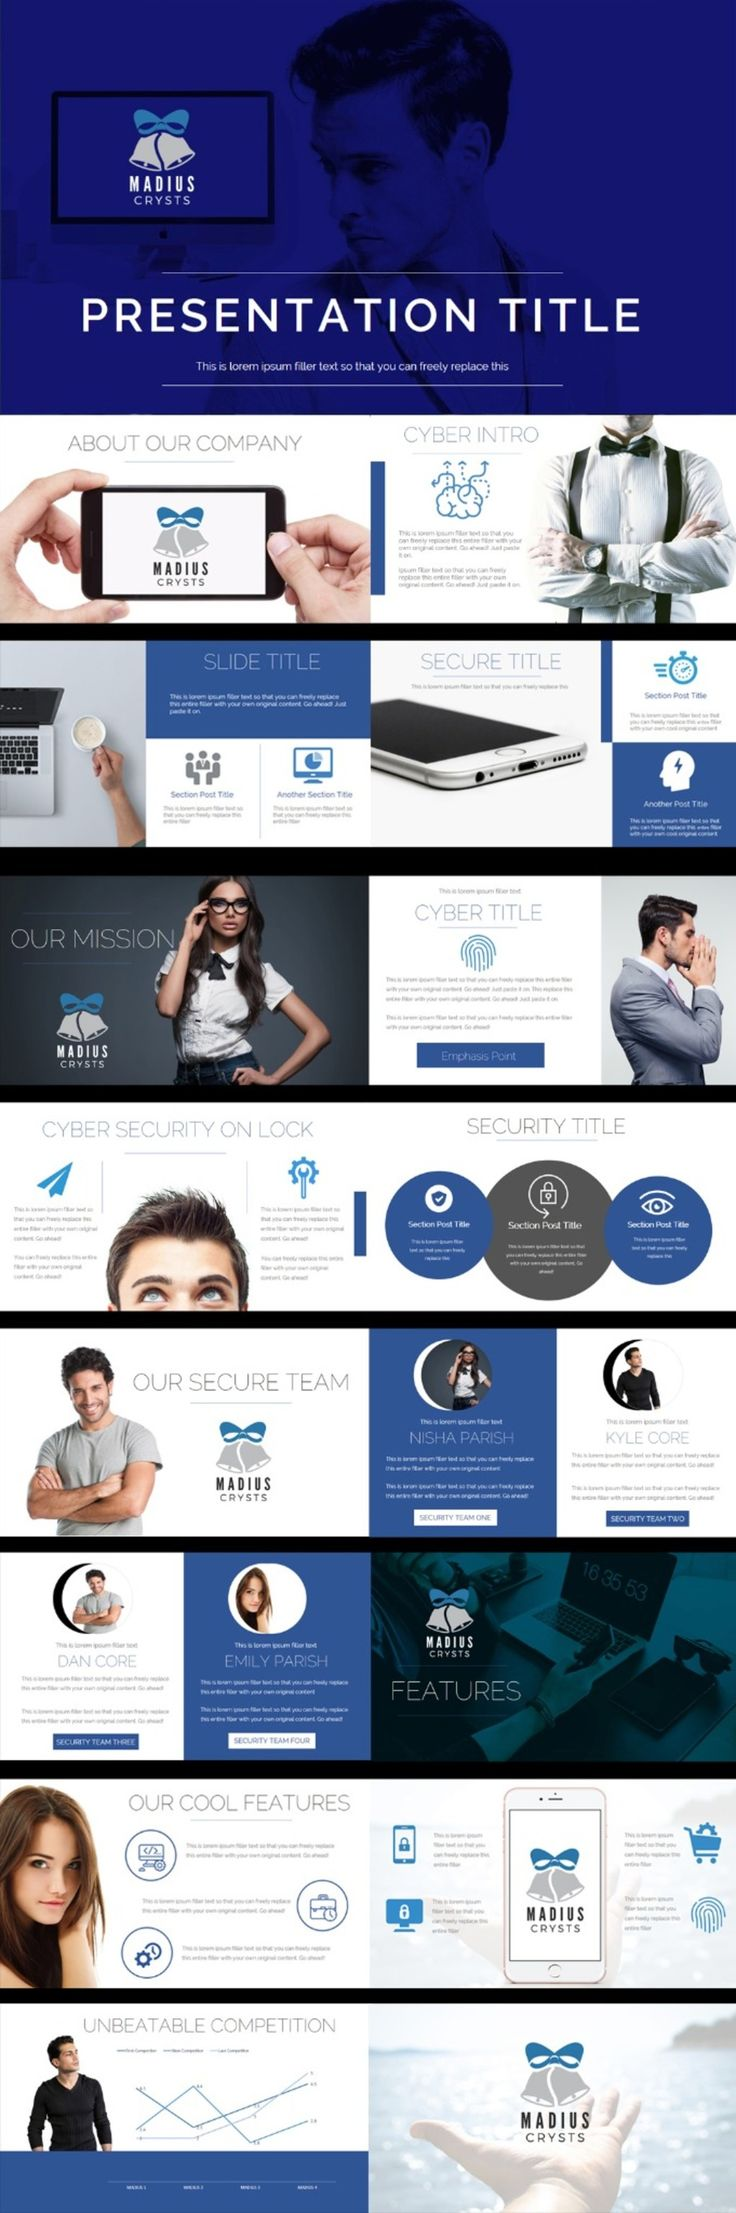 The 8 best gorgeous professional presentation inspiration images on cyber solutions professional clean powerpoint presentation iamgonegirl designs toneelgroepblik Gallery